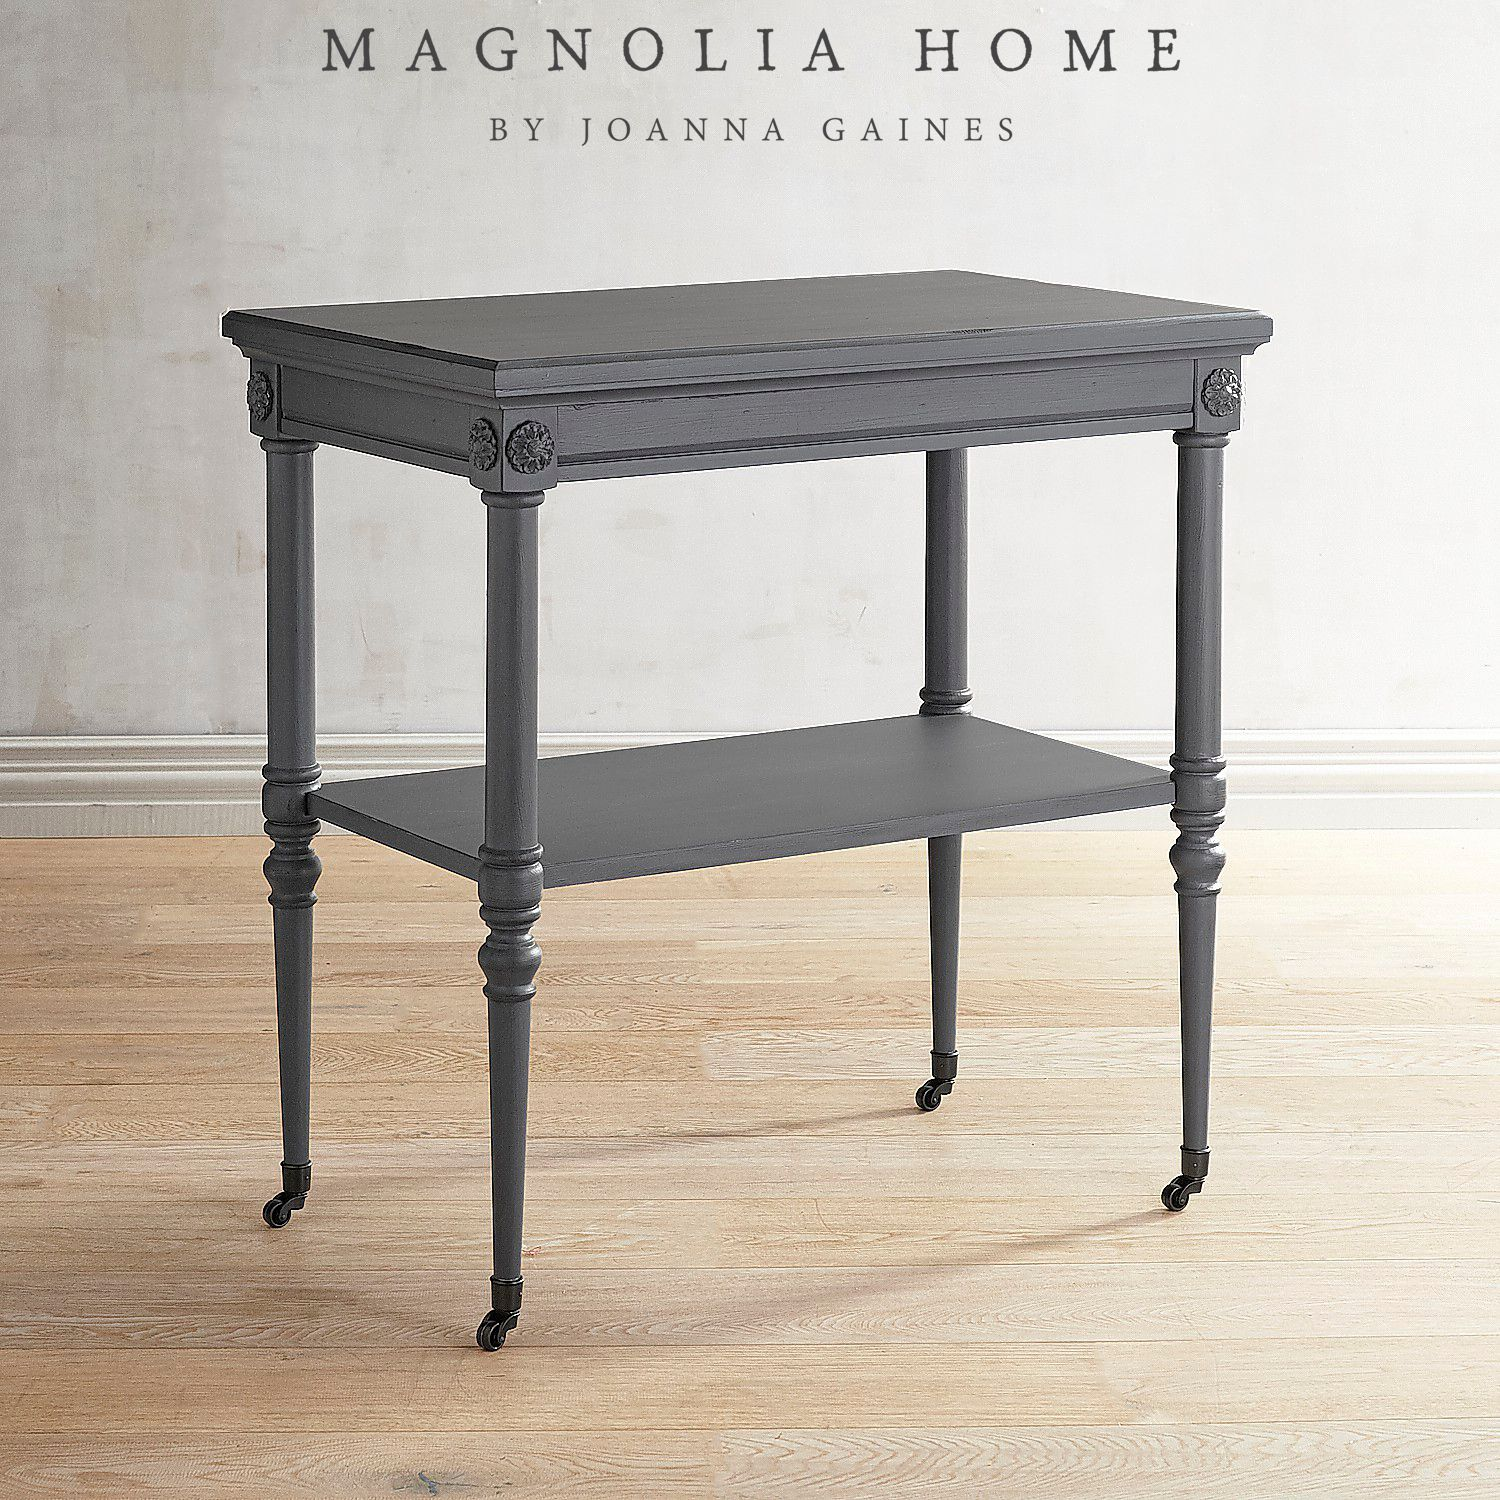 magnolia home petite rosette gray accent table pier imports large outdoor side lamp shades wooden kitchen one end tables tablecloth round brass top ideas nesting gold bookshelf